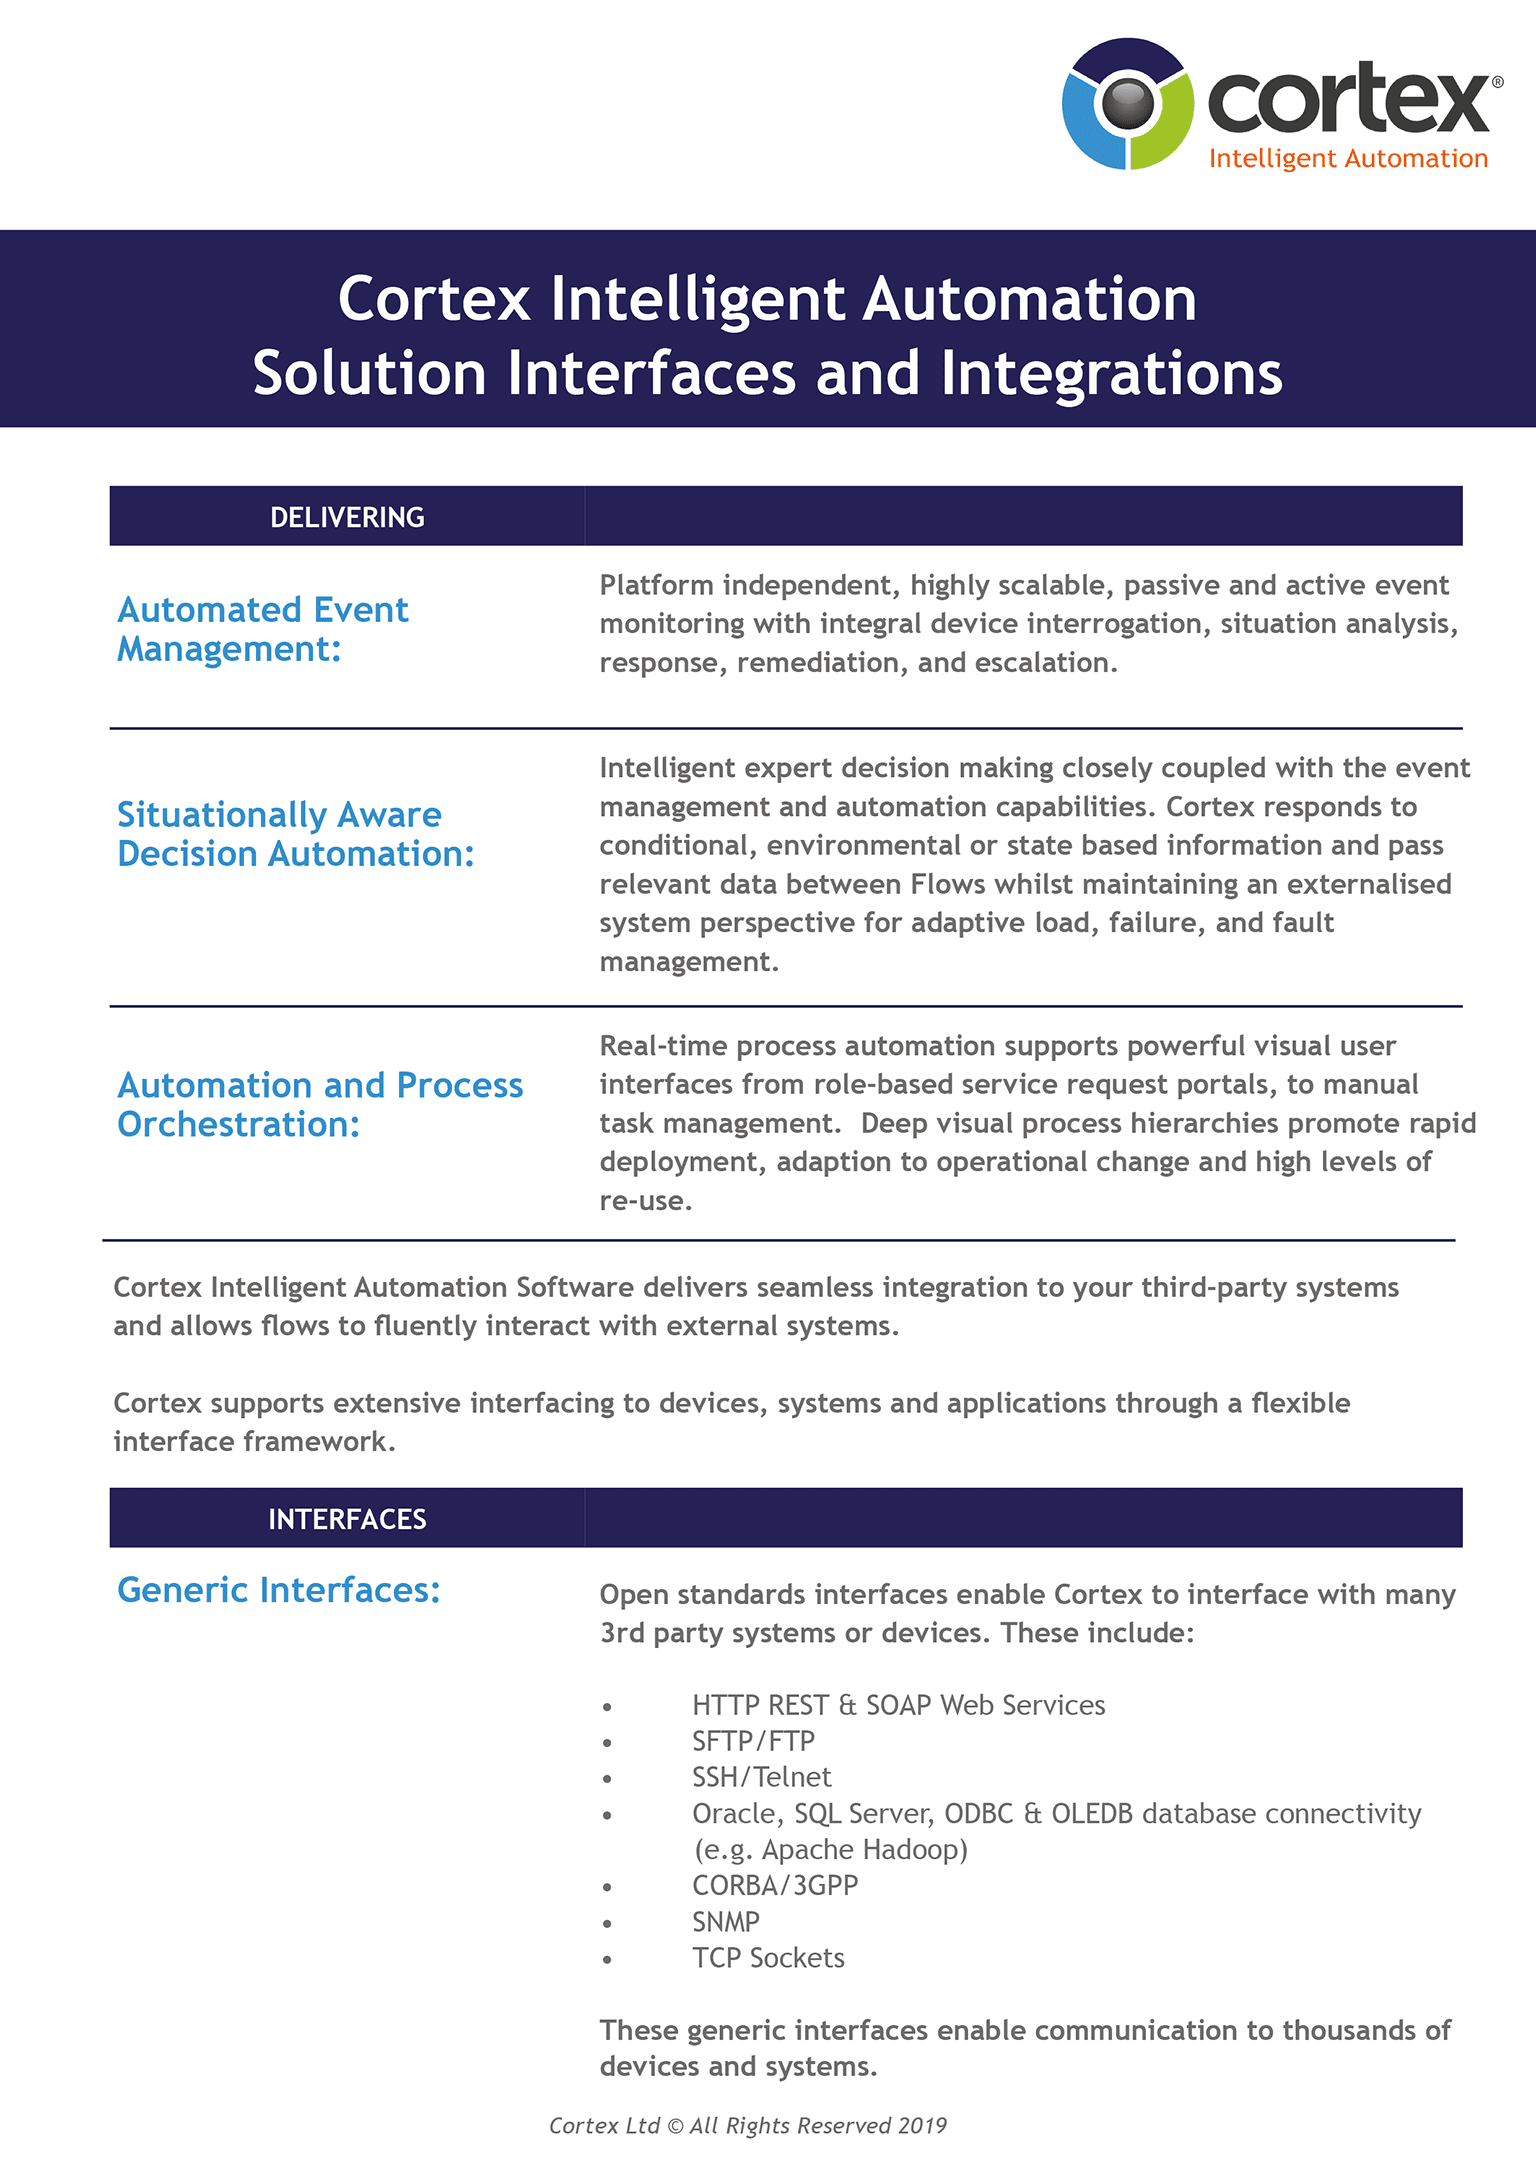 Cortex Intelligent Automation Product Interfaces and Integrations